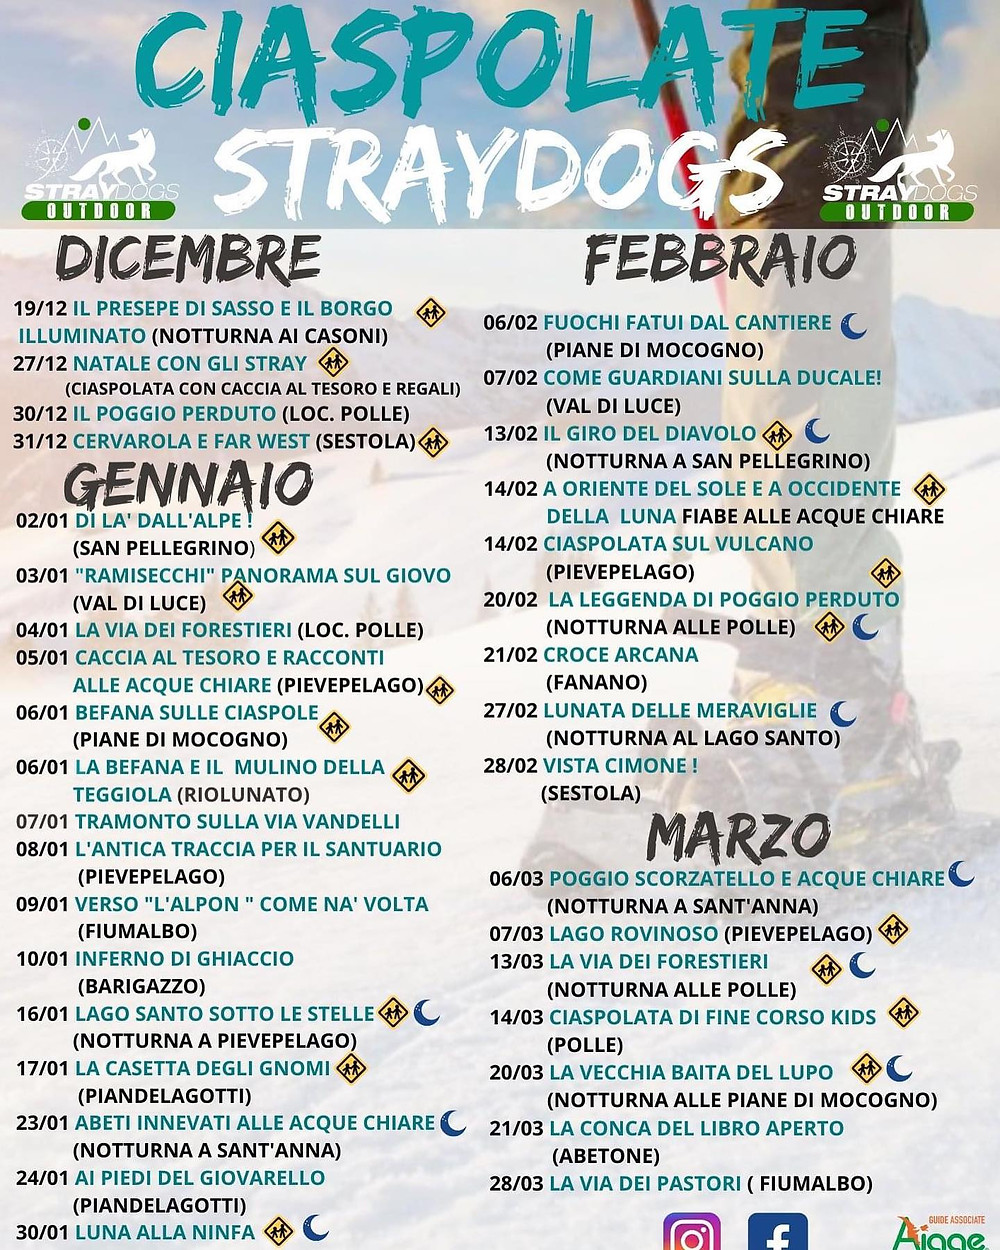 calendario ciaspolate Straydogs cimone sestola